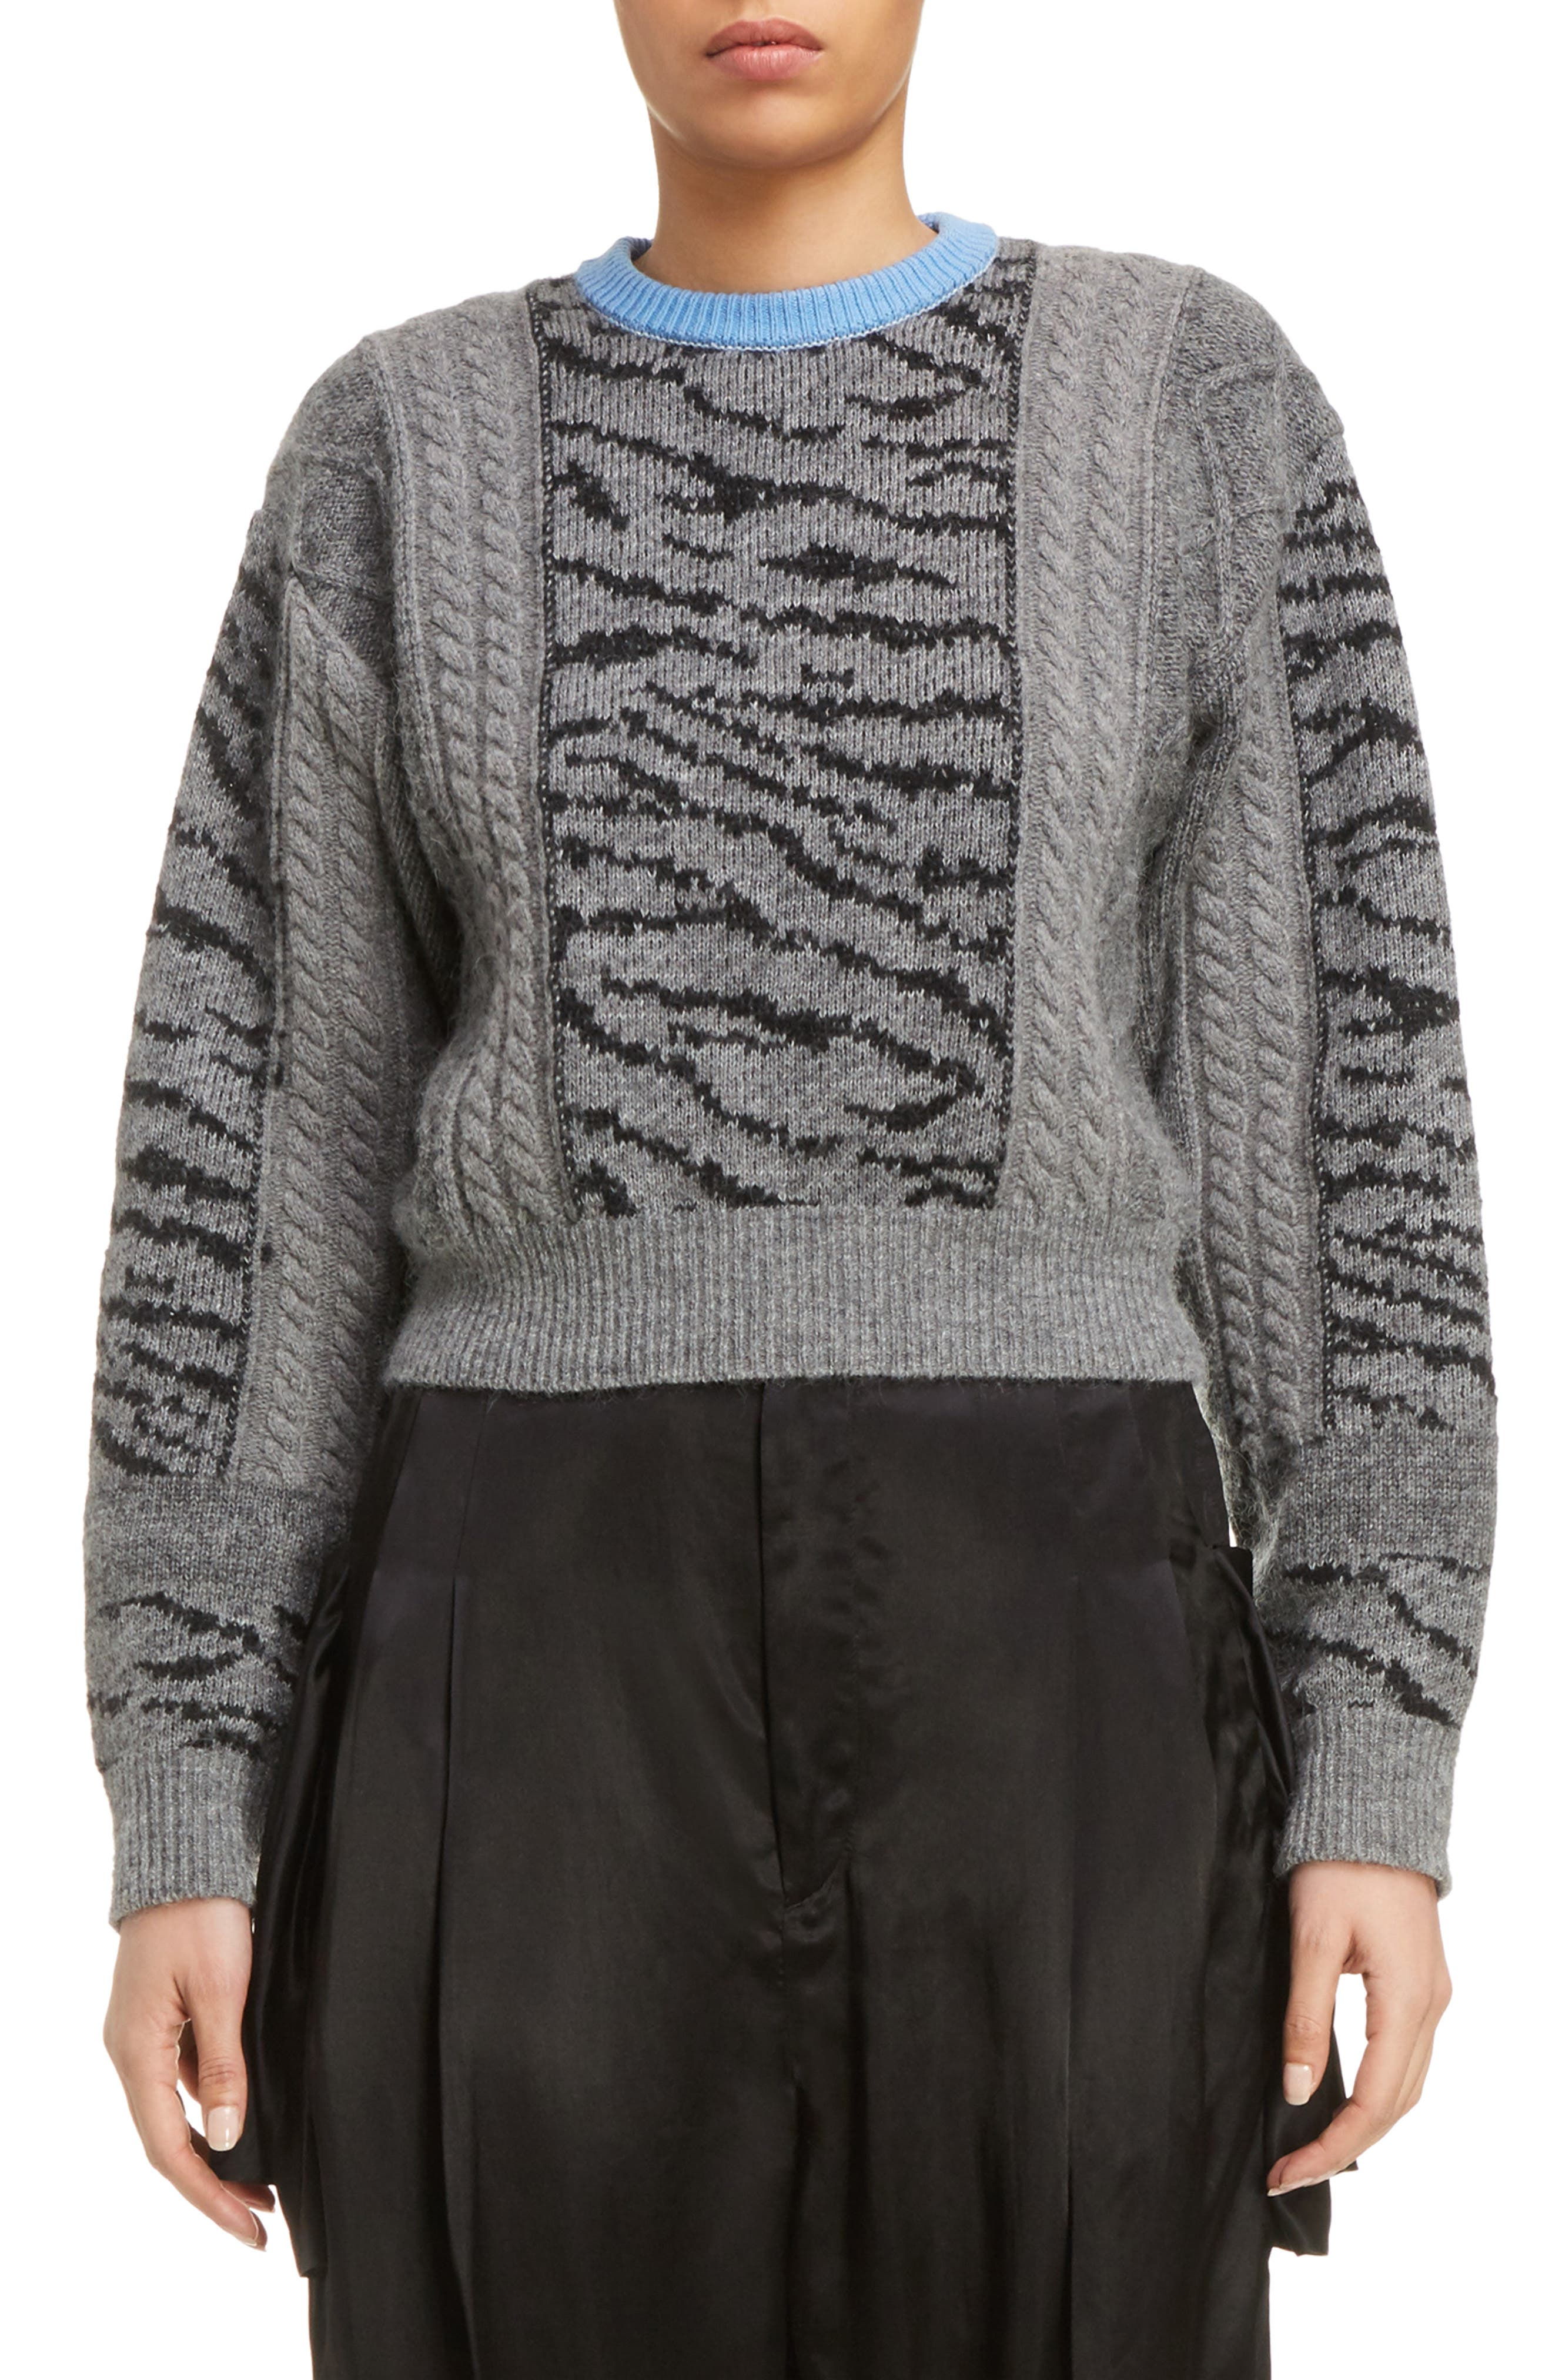 TOGA Tiger Jacquard Knit Sweater